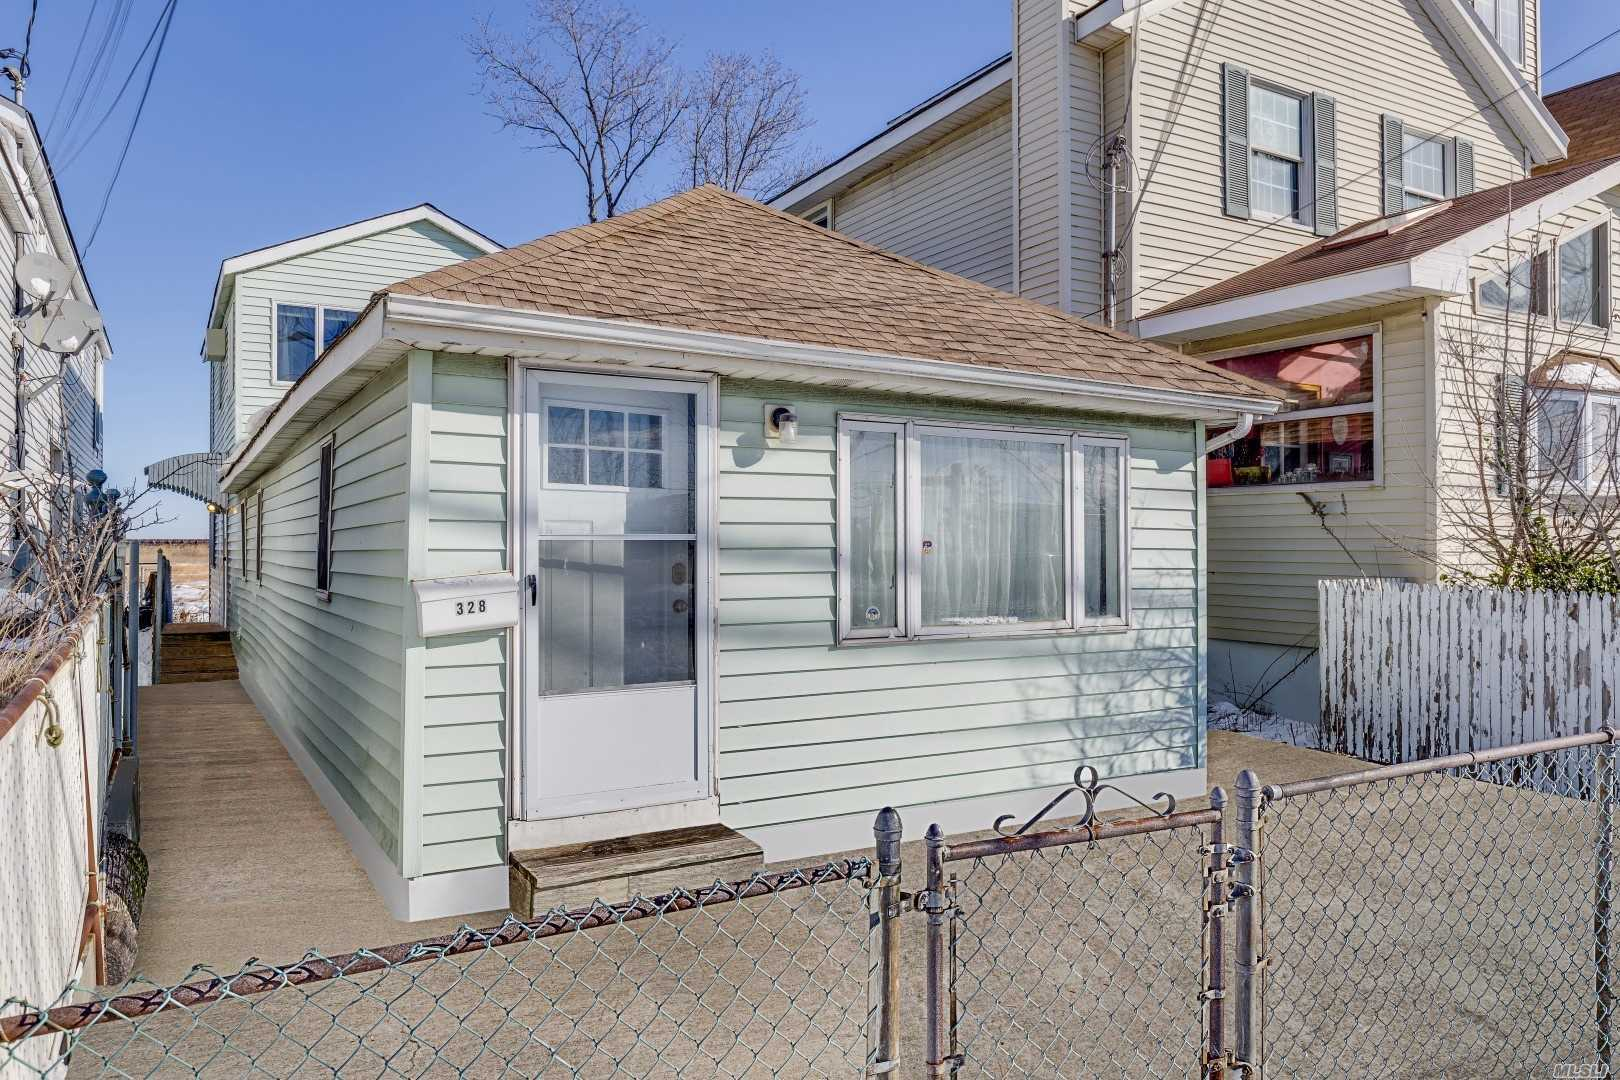 A Gem Located Next To The Heart Of Jamaica Bay Wildlife Refuge. No Worries Of Construction Blocking Your Backyard View. Renovated Front Apartment; Room For Mom, With Rear Apartment Updated.Separate Meters Minutes Away From Riis Beach. Restaraunts And Shopping Center Minutes Away.